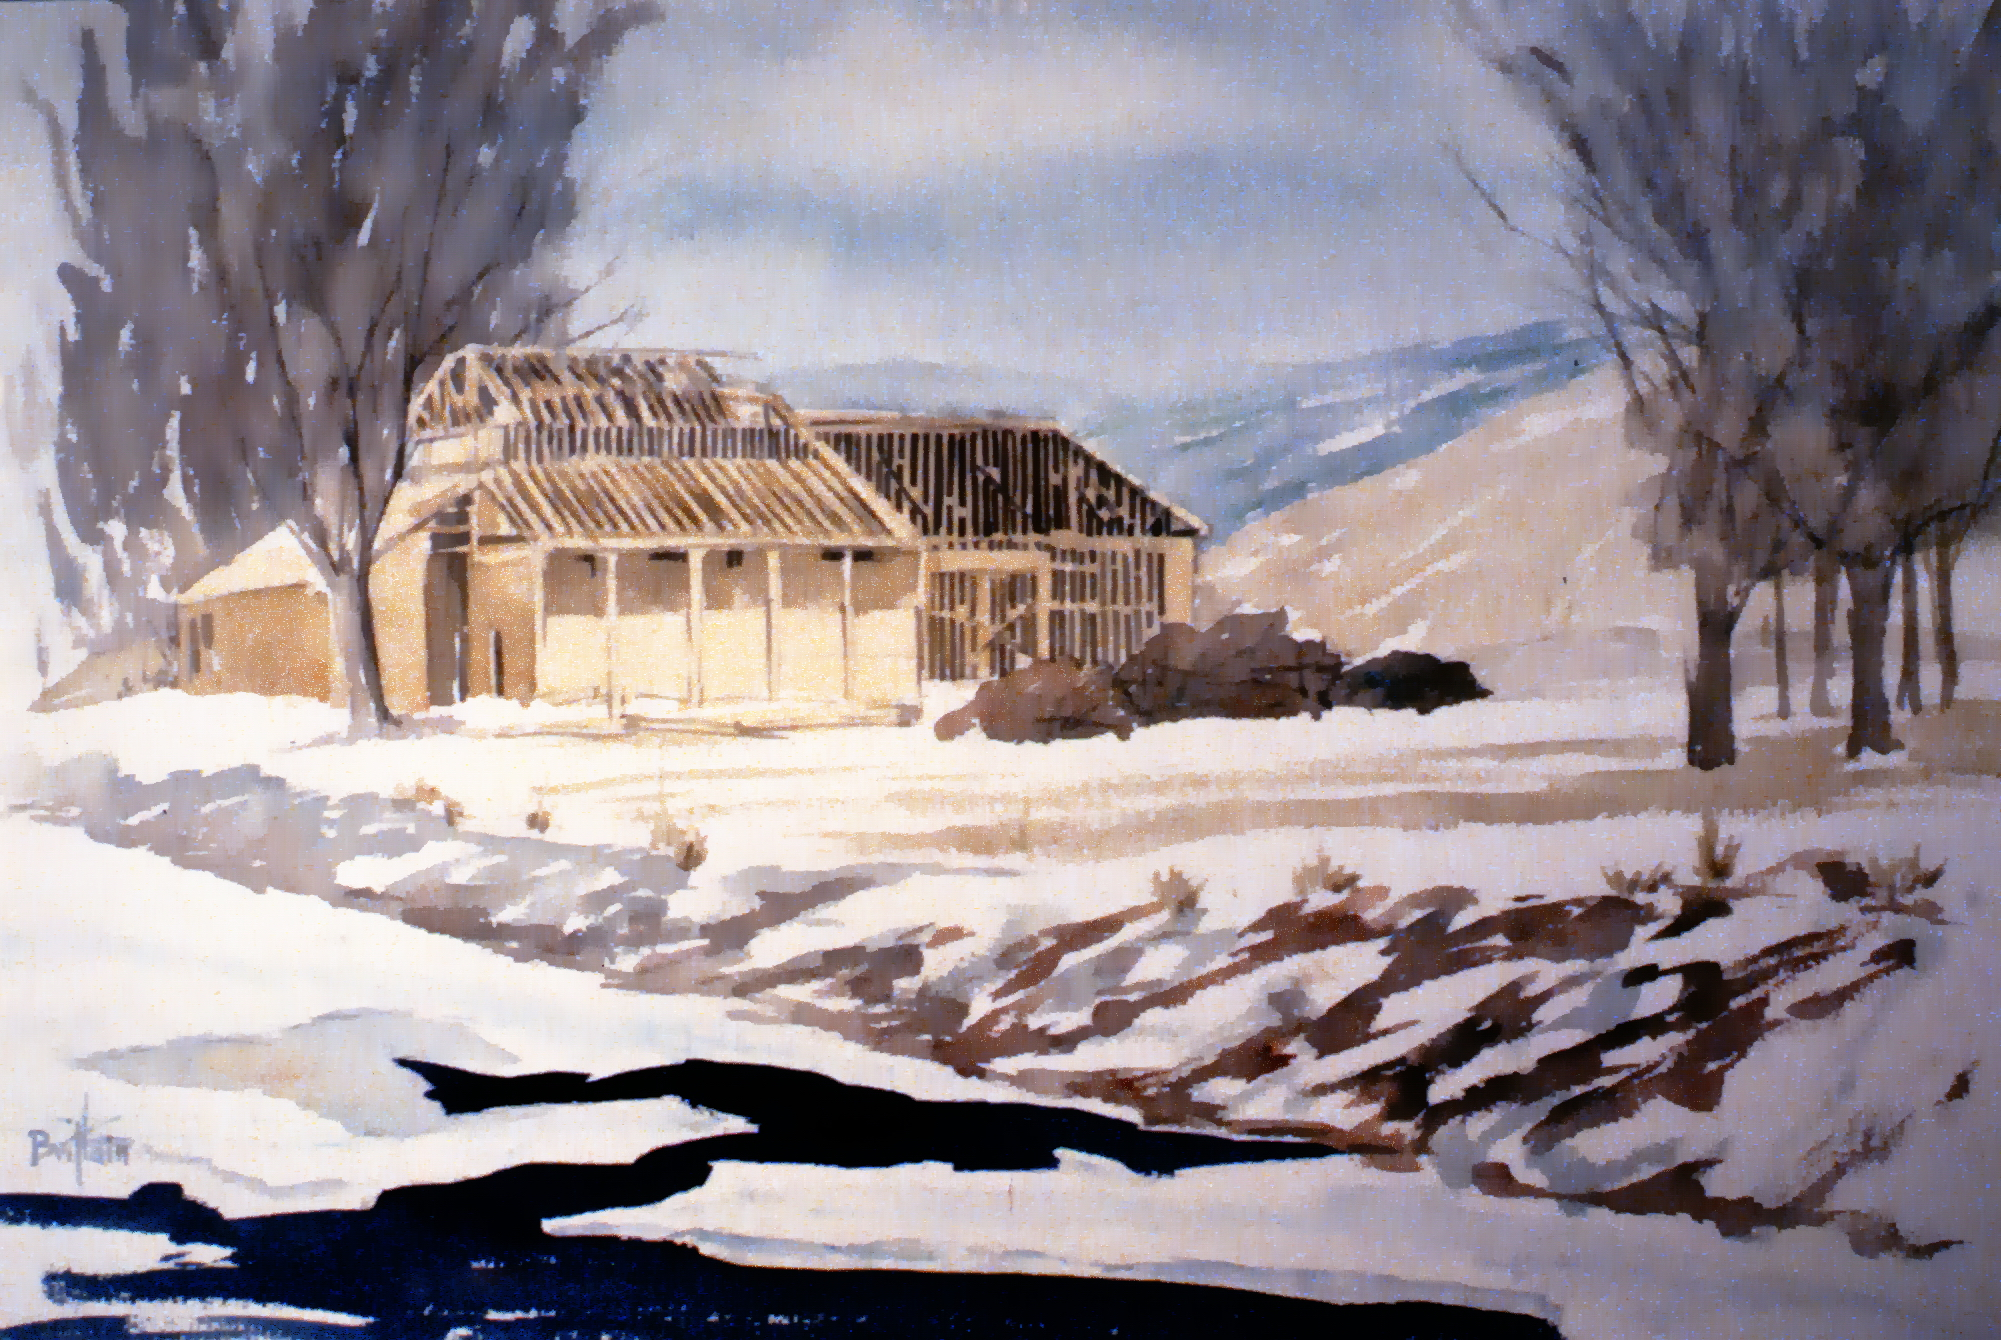 """Art Gallery Building, 1985 , Herb Brittain, watercolour on paper, 14"""" x 22"""", 1986.05.03. Gift of the artist."""